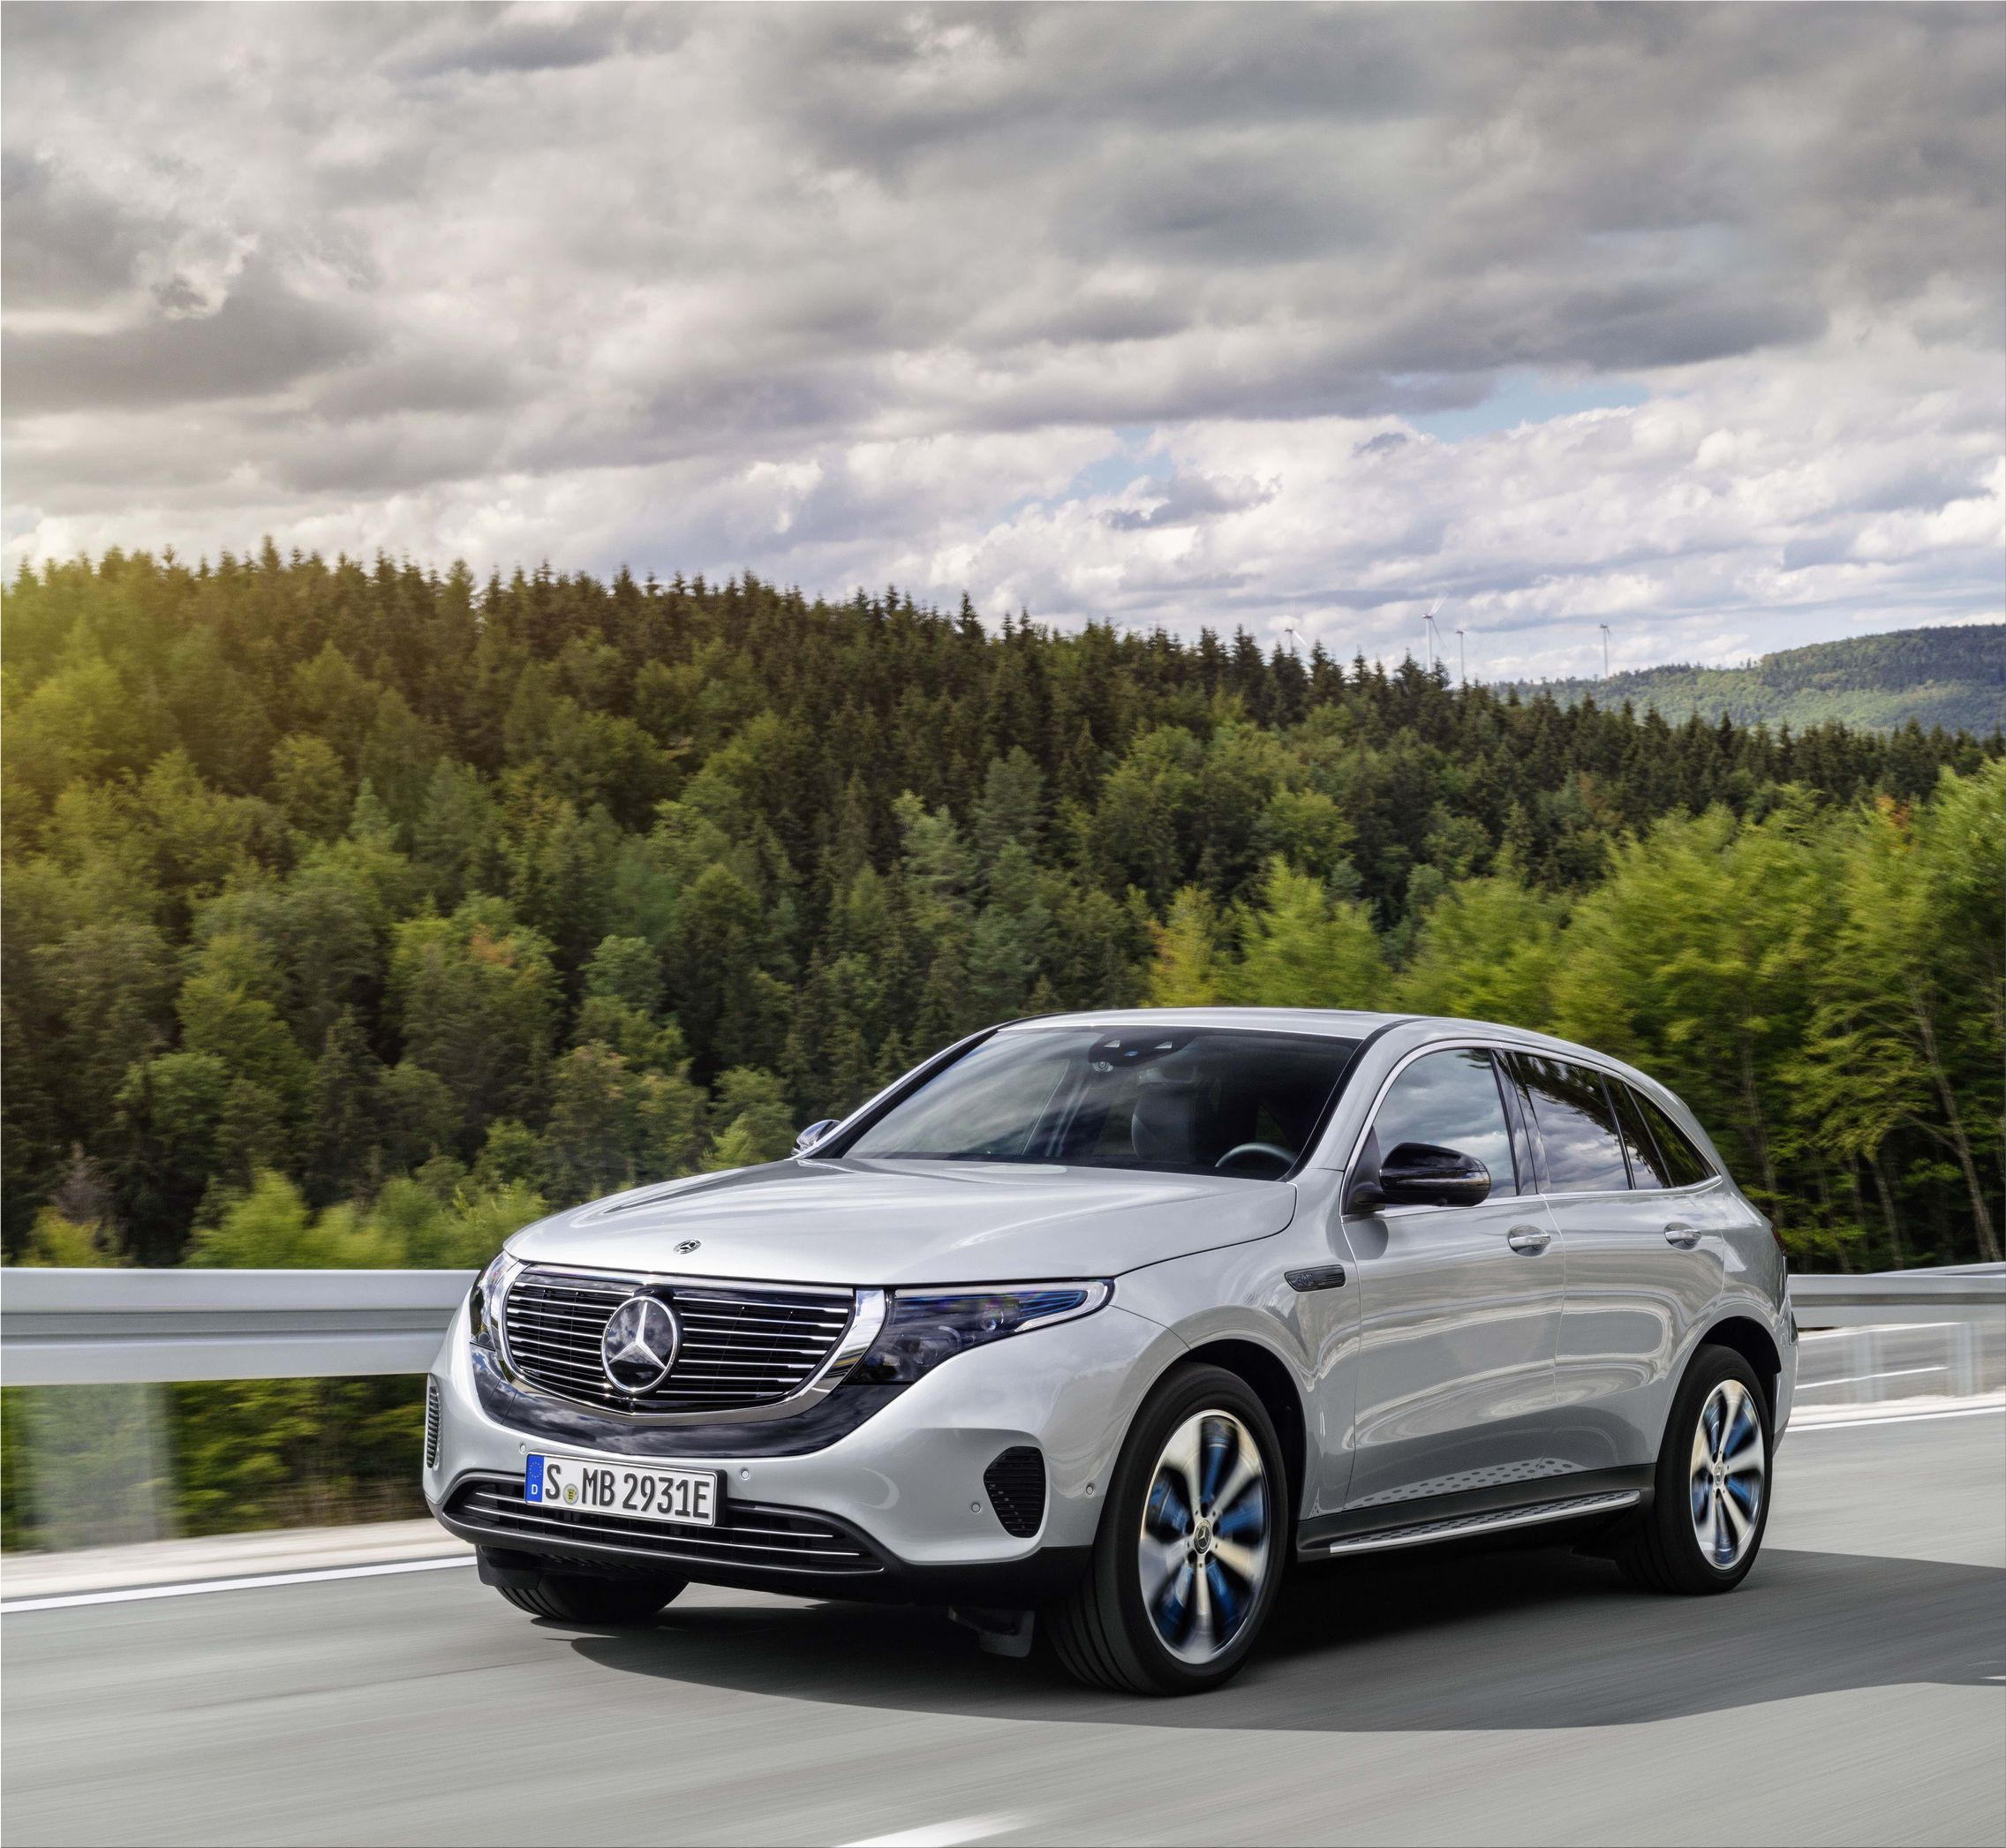 New Mercedes EQC 2019: Prices Of The Electric SUV From